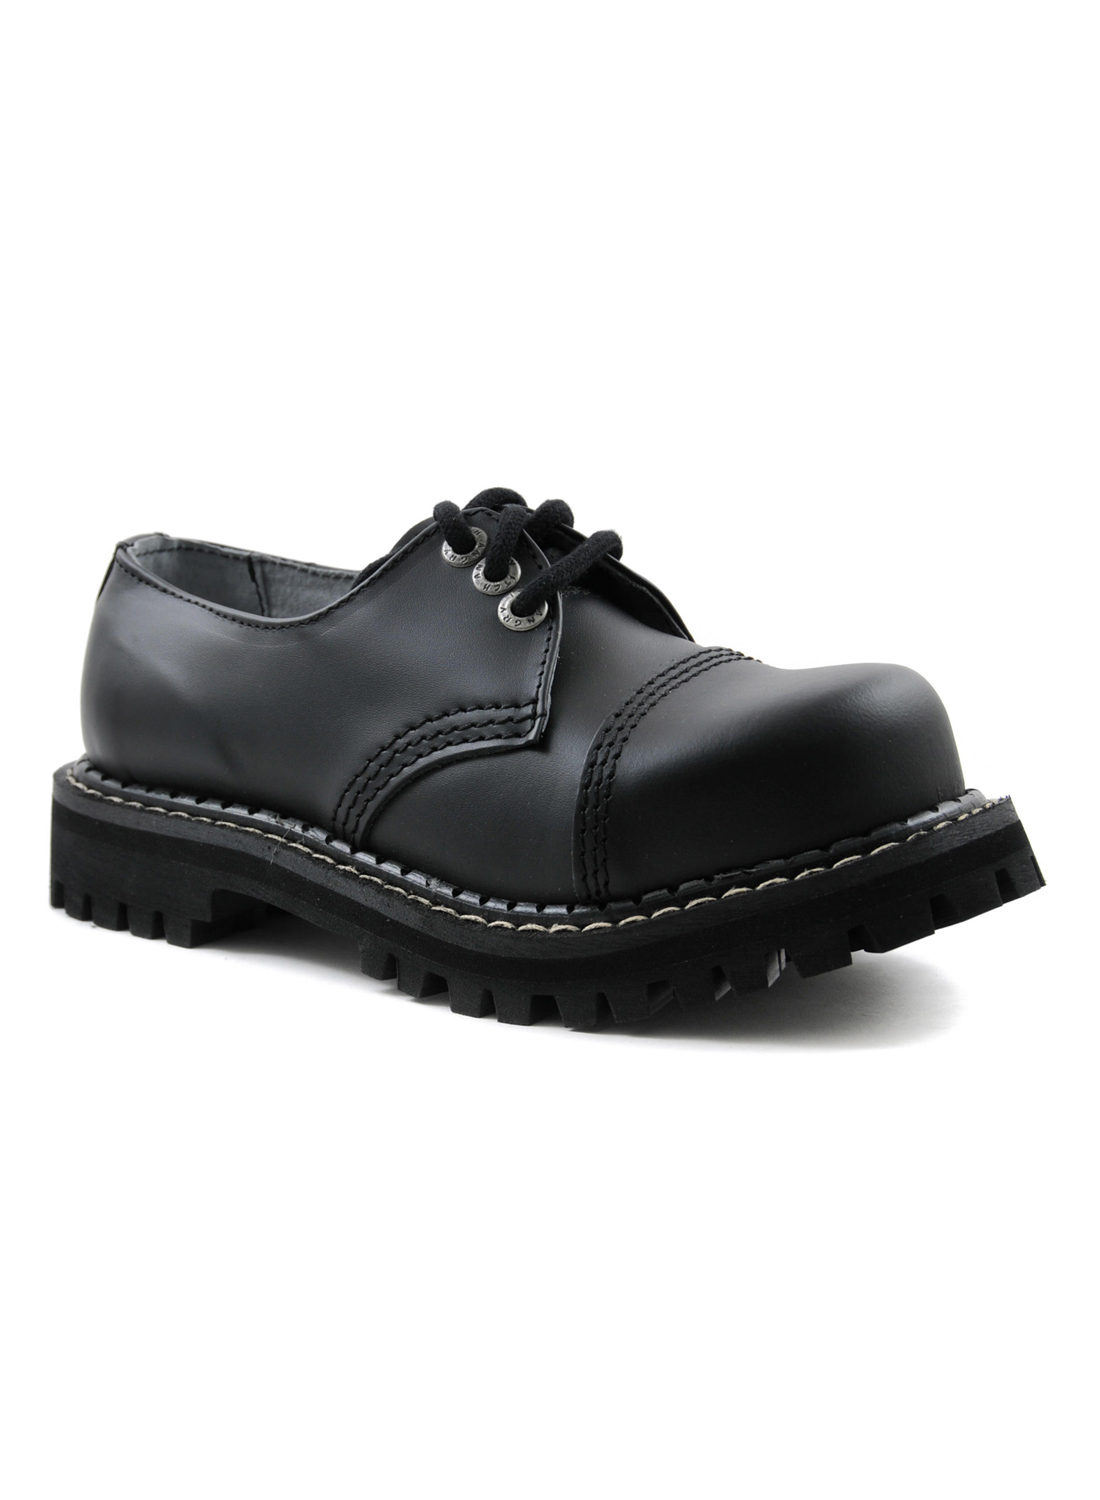 Angry Itch 3 Eye Steel Toe Boots Leather